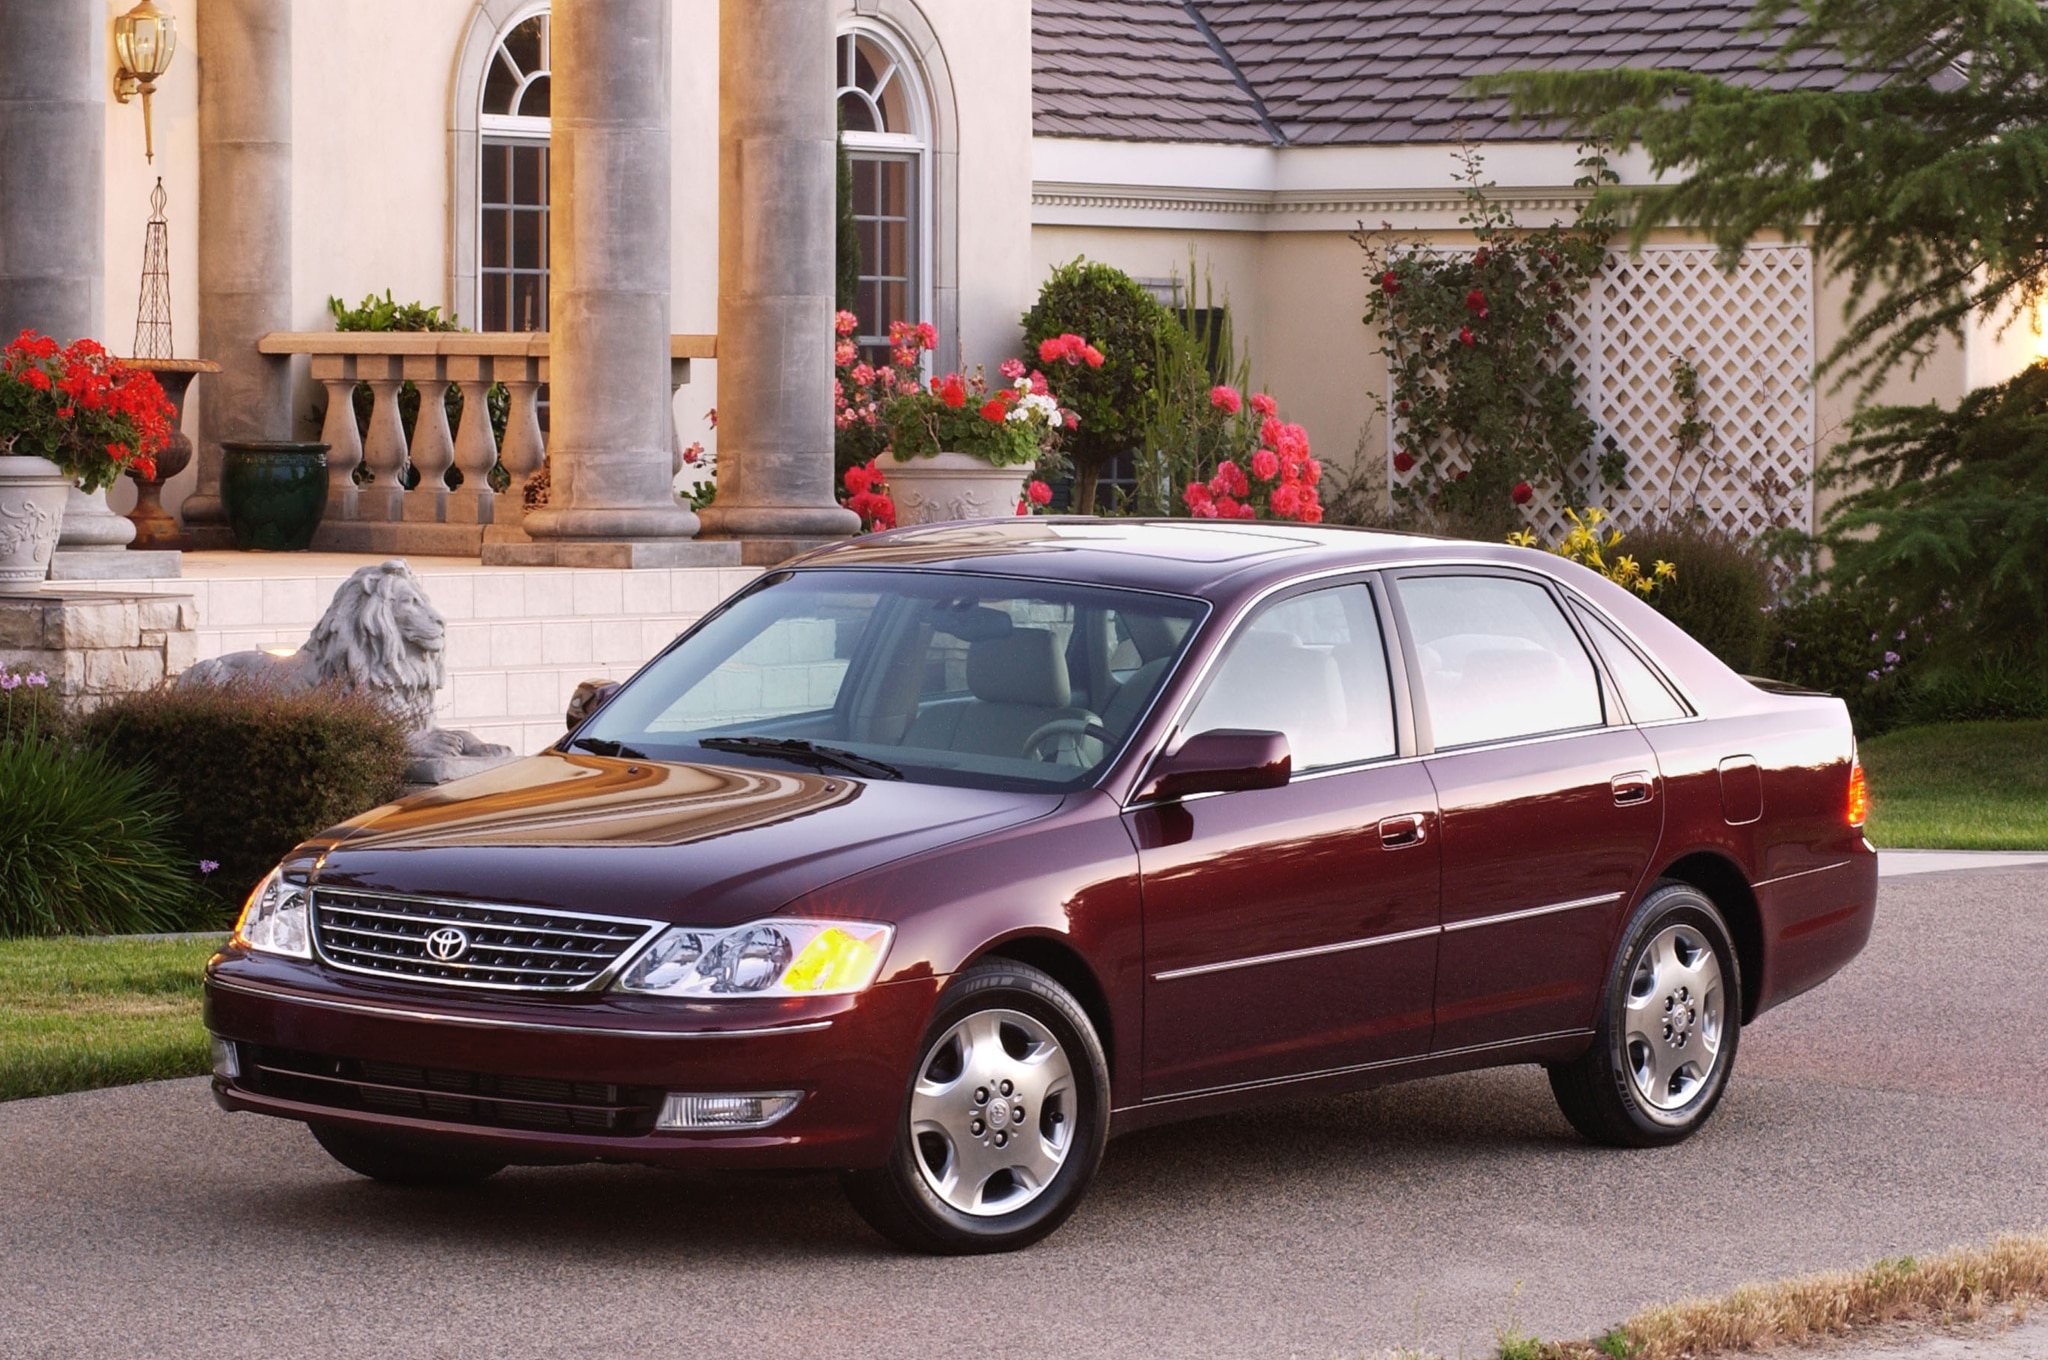 2003 Toyota Avalon Front Three Quarter 21